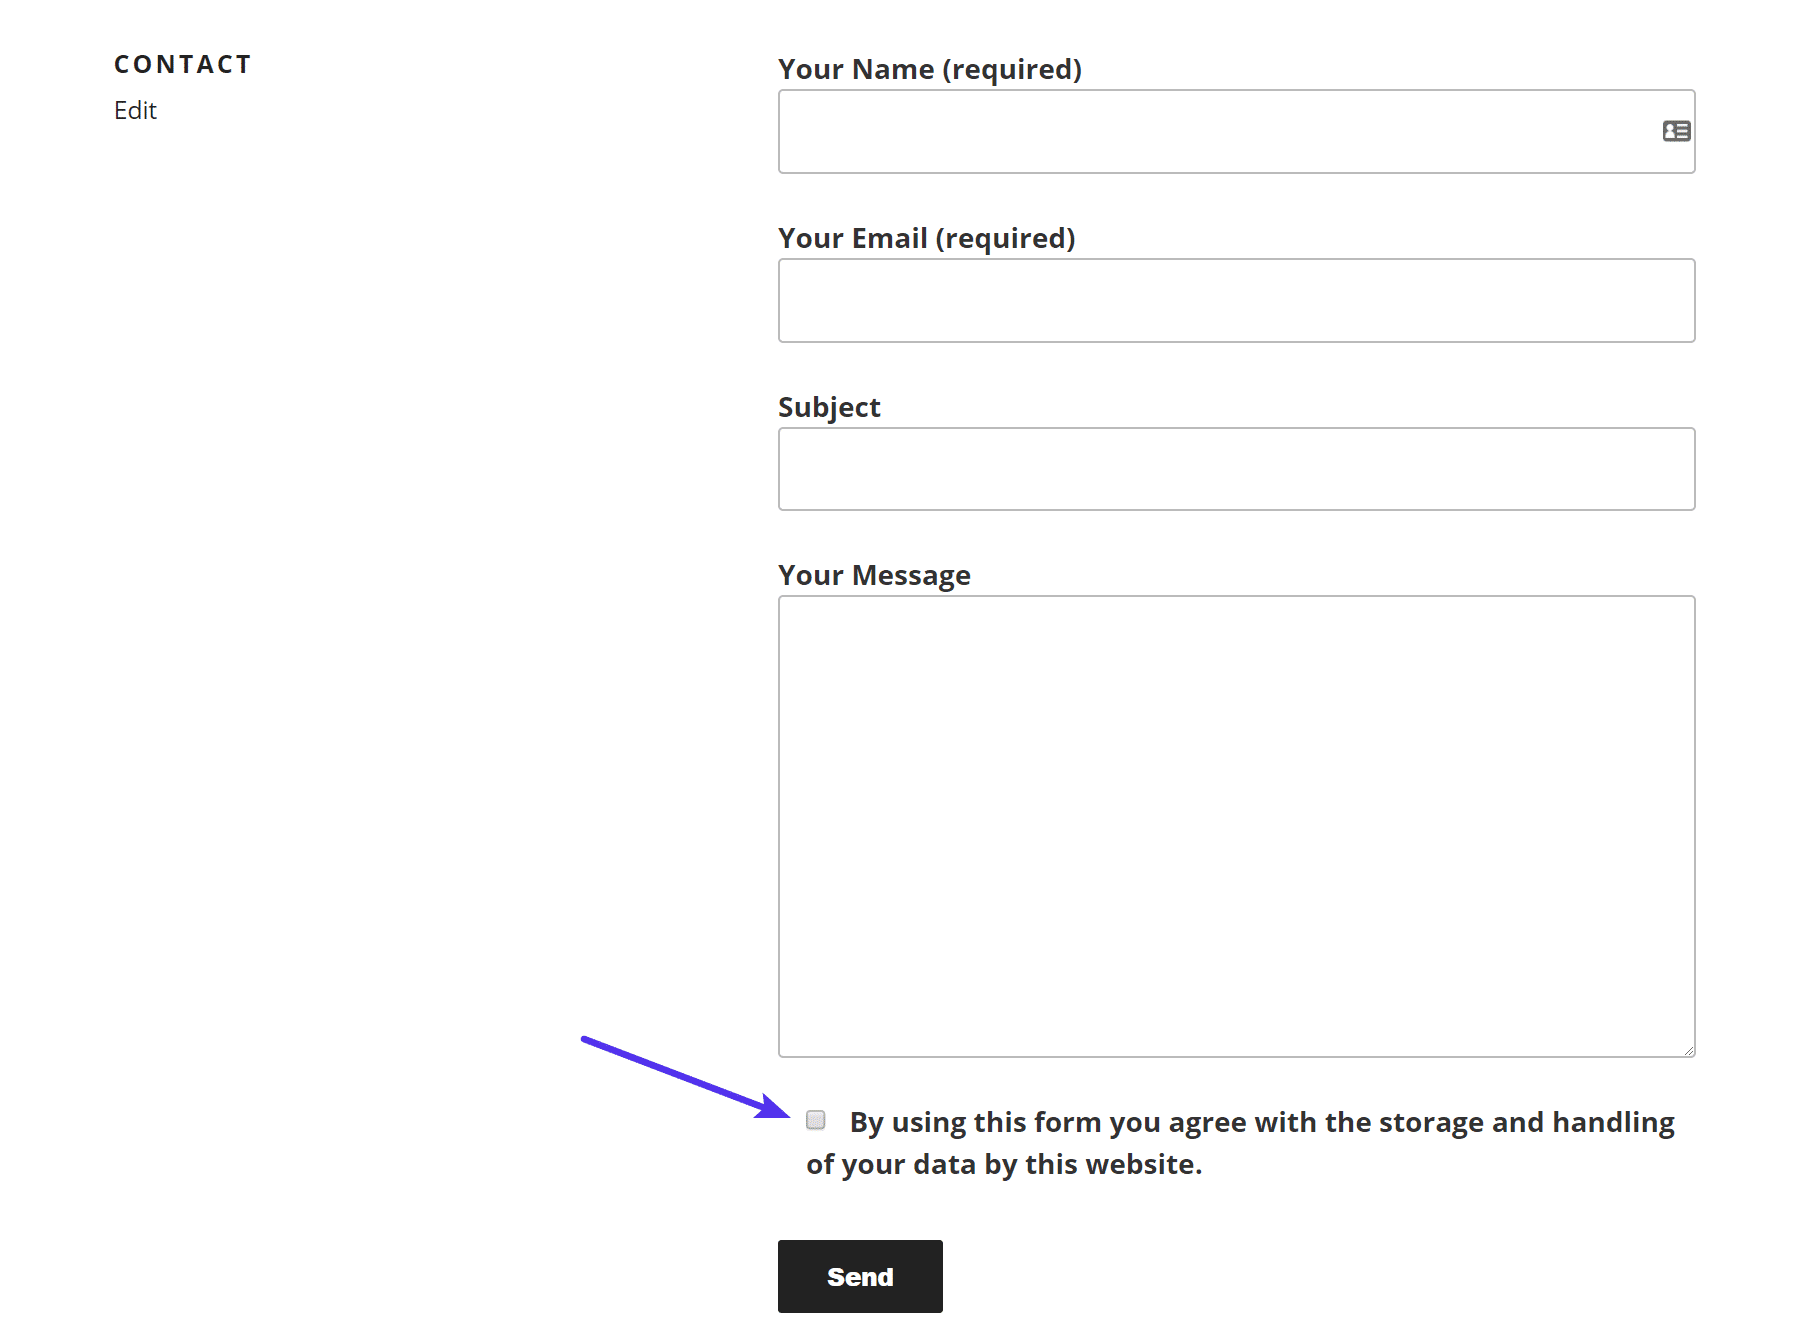 wordpress-gdpr-contact-form